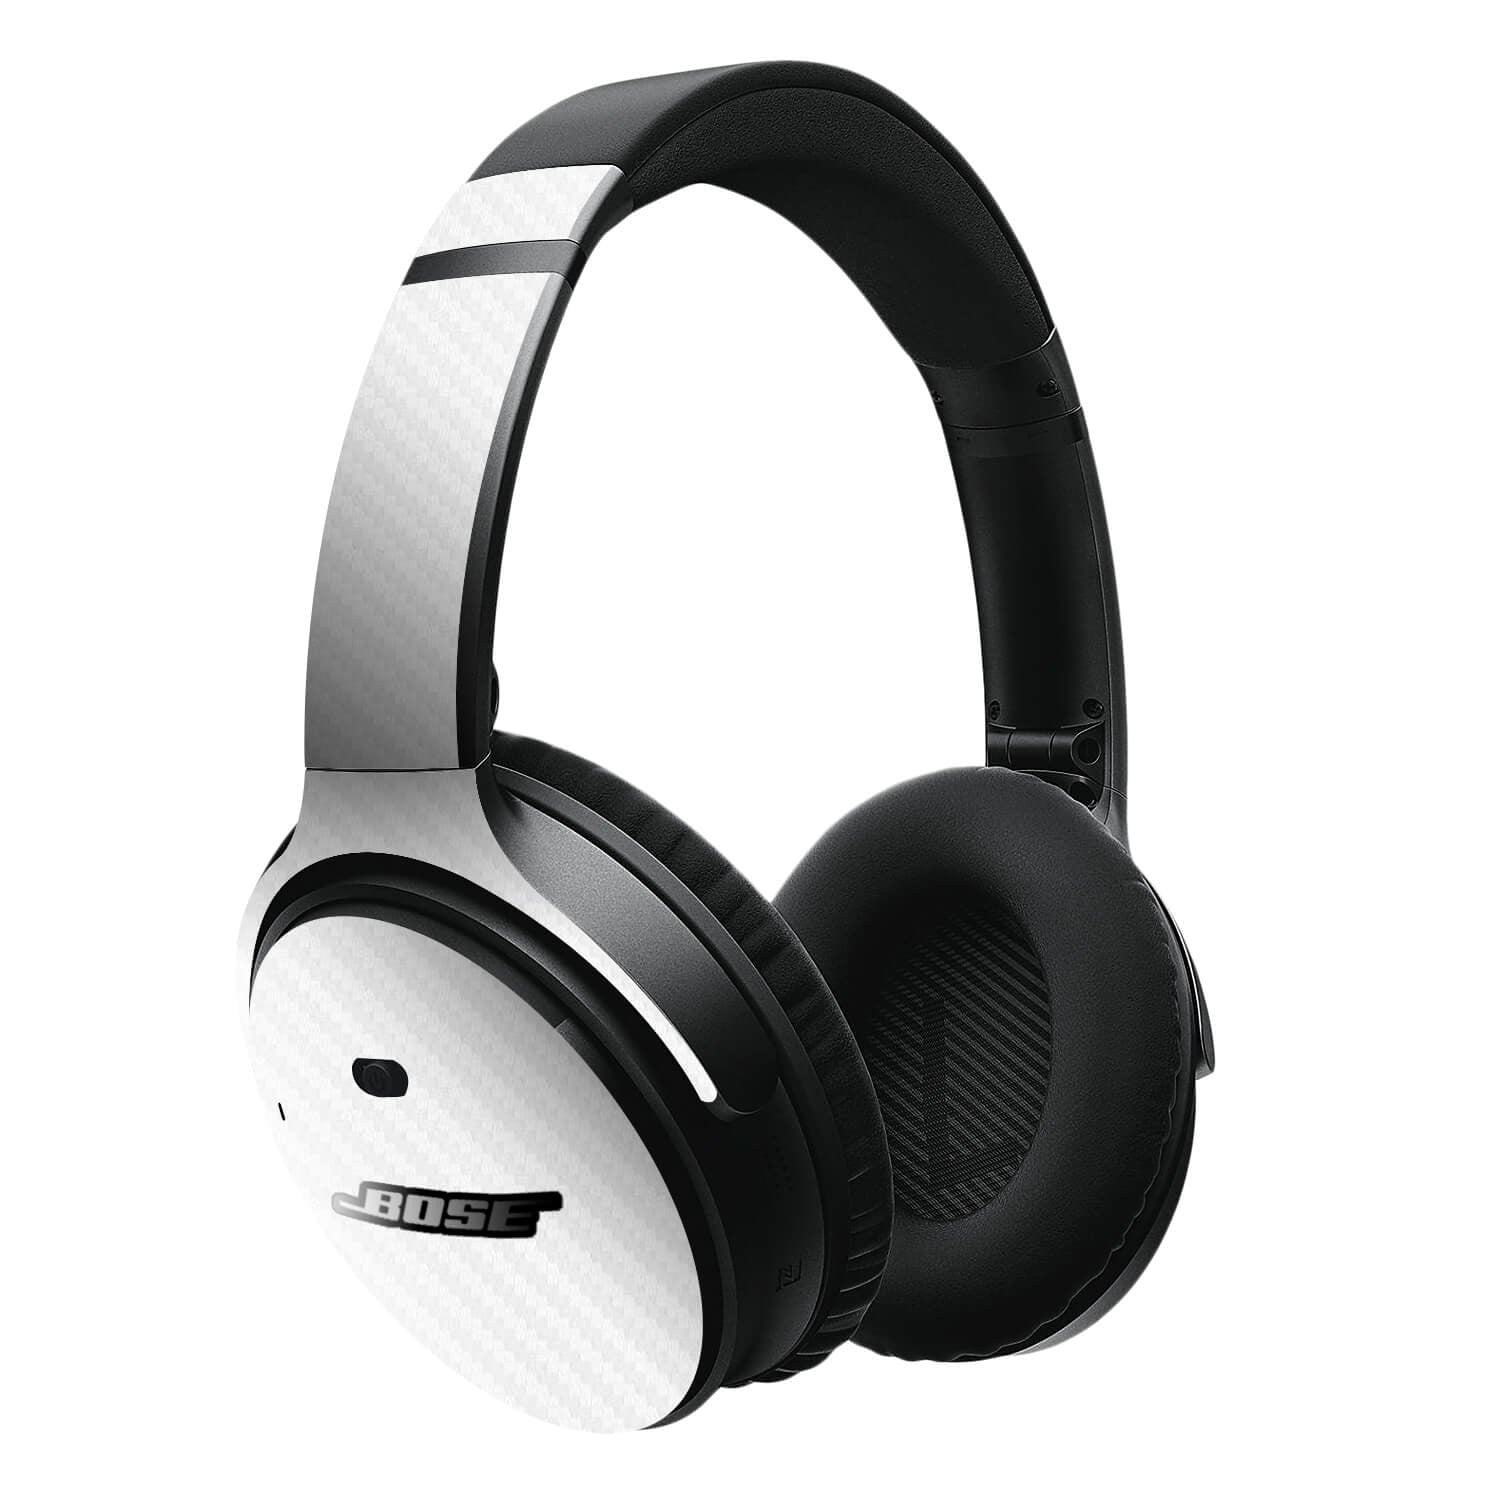 bose qc25. bose qc25 headphone white carbon skin qc25 t